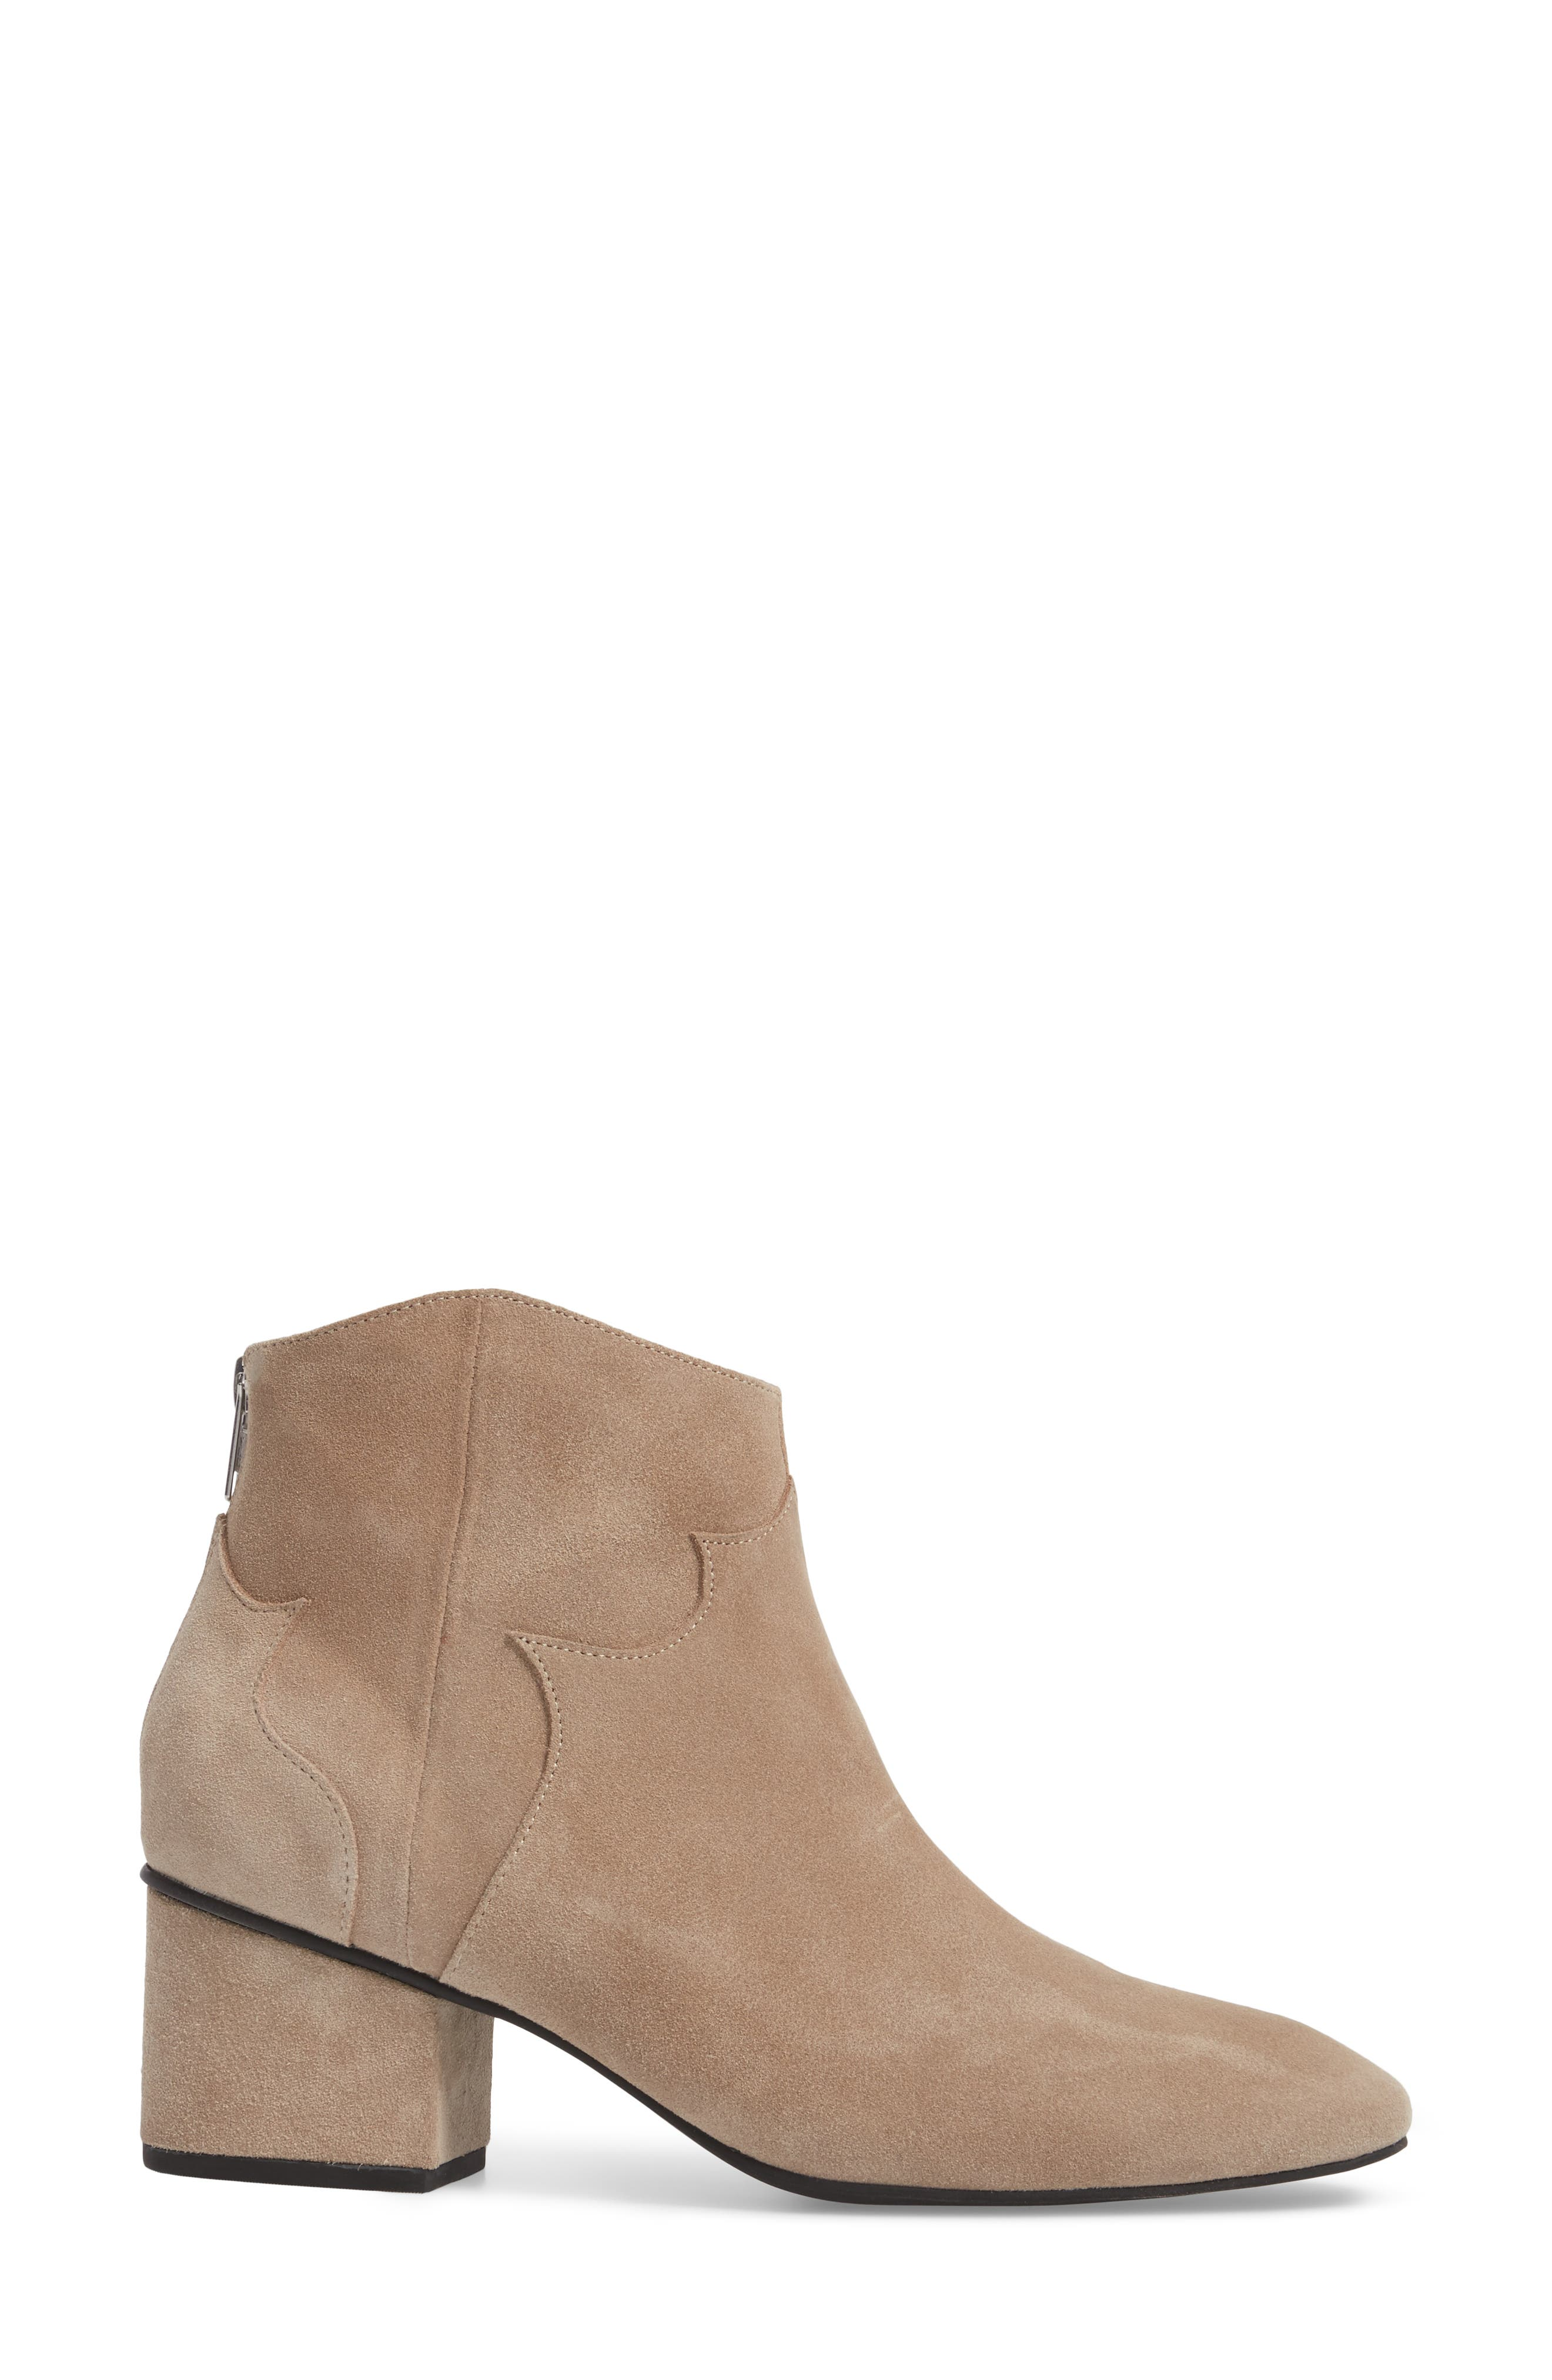 Texan Arched Bootie,                             Alternate thumbnail 3, color,                             Desert Suede